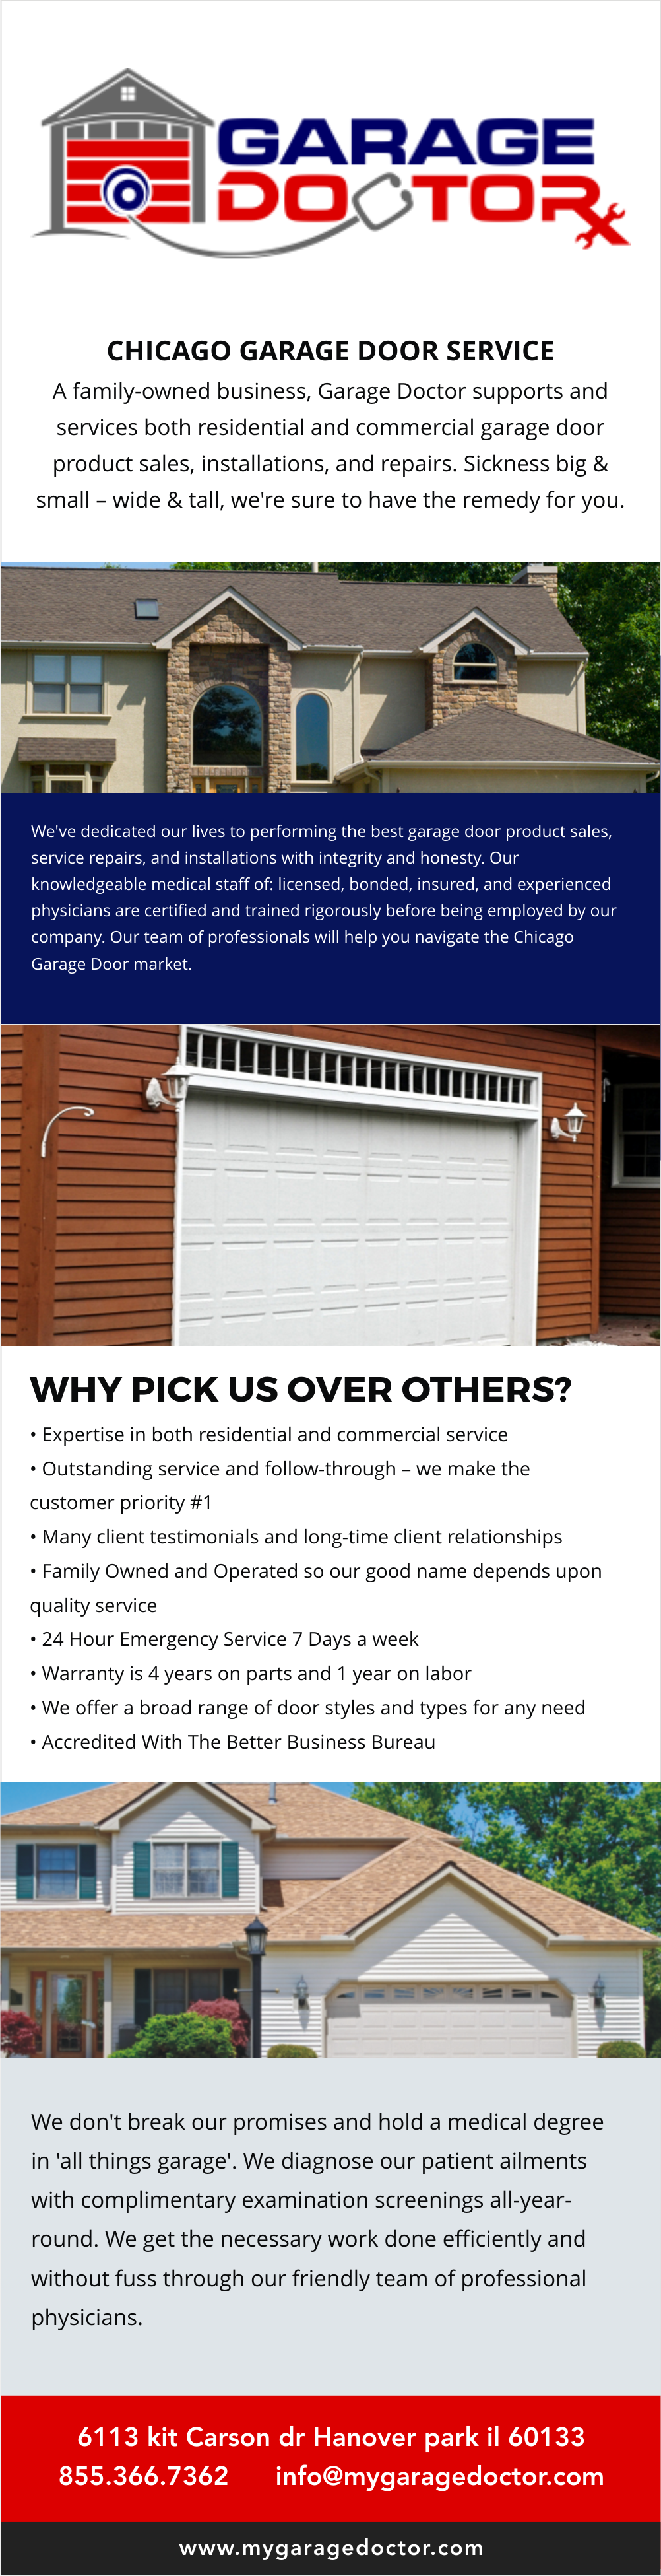 Garage Doctor, Inc. Is A Garage Door Repair And Installation Company That  Provides Service